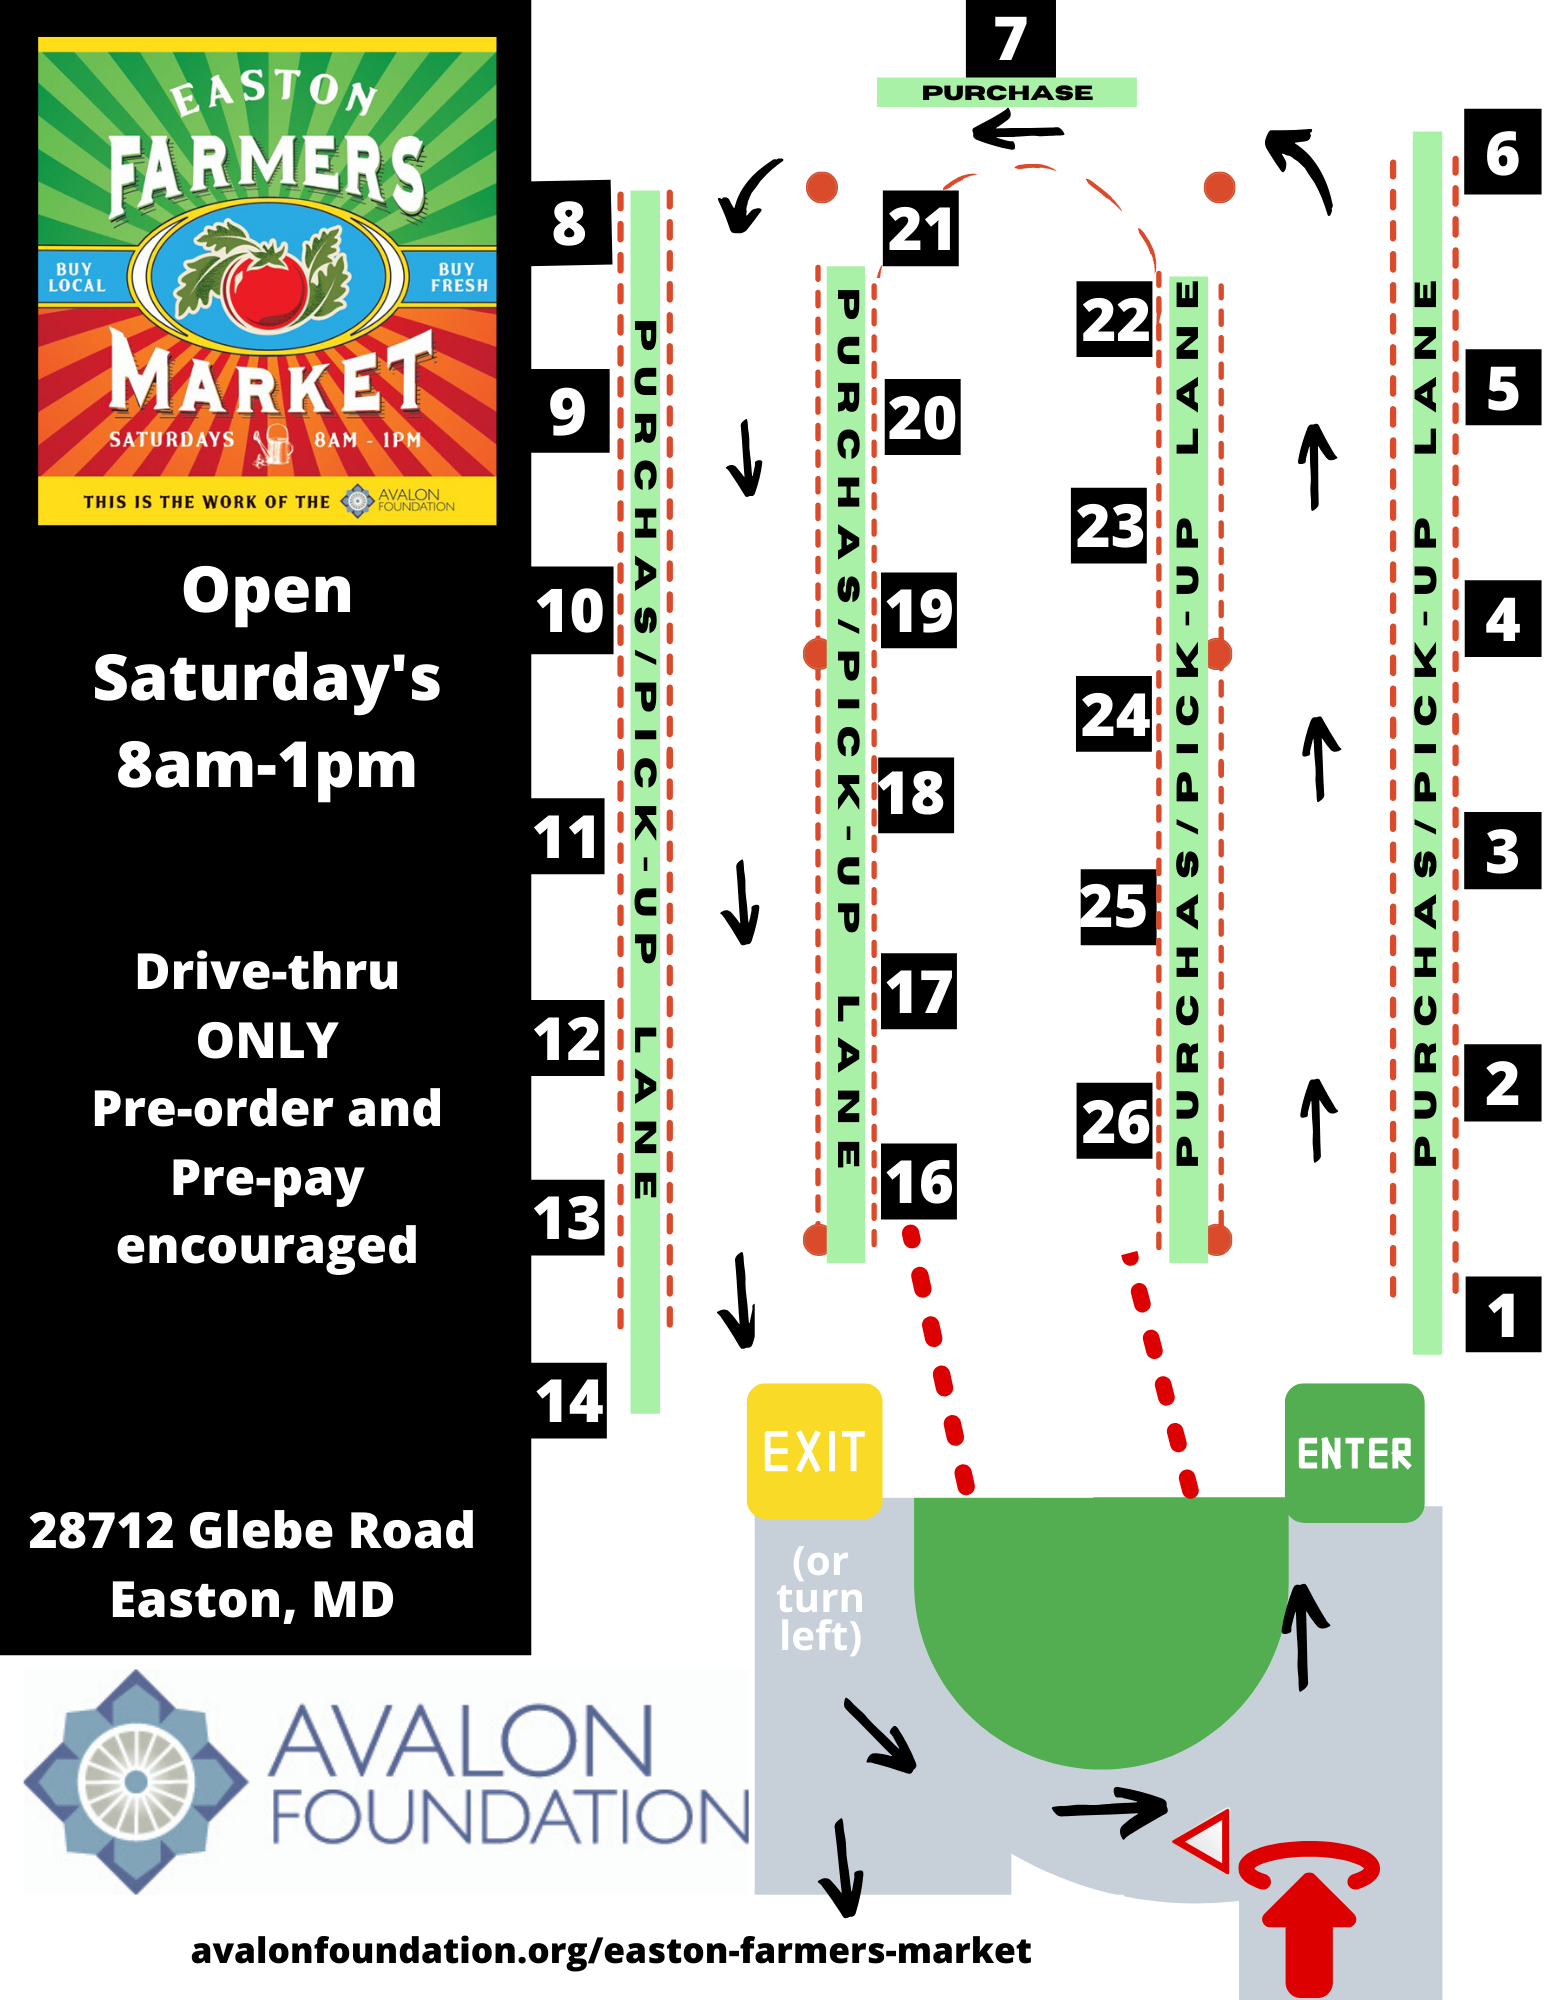 Easton Farmers Market Map